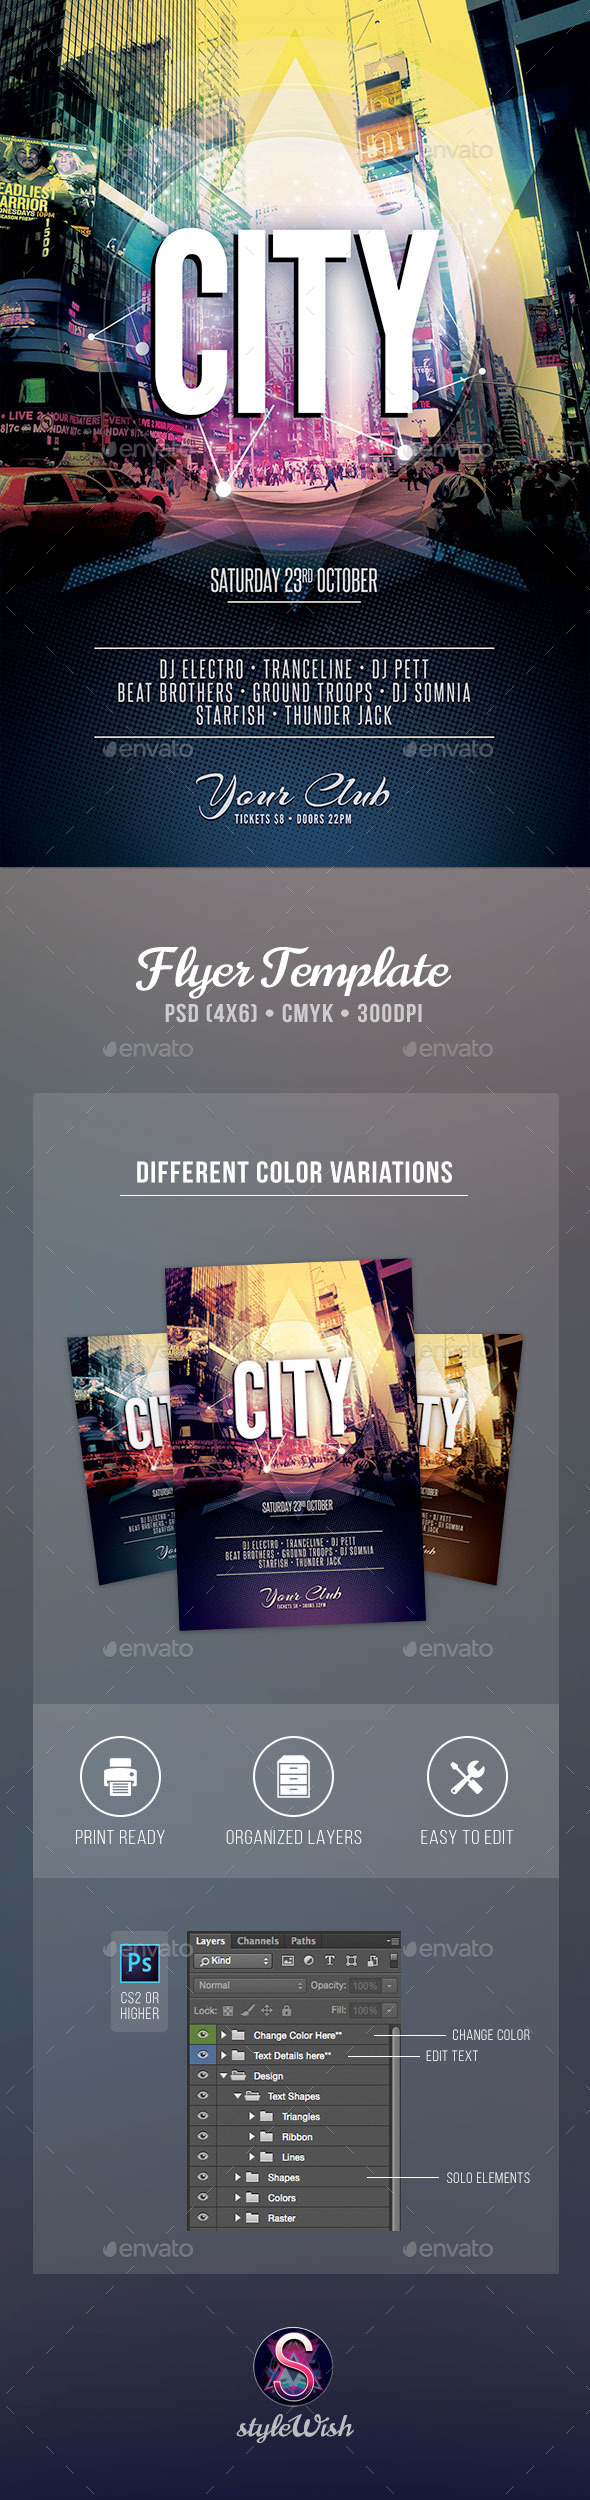 City Flyer Template - Concerts Events